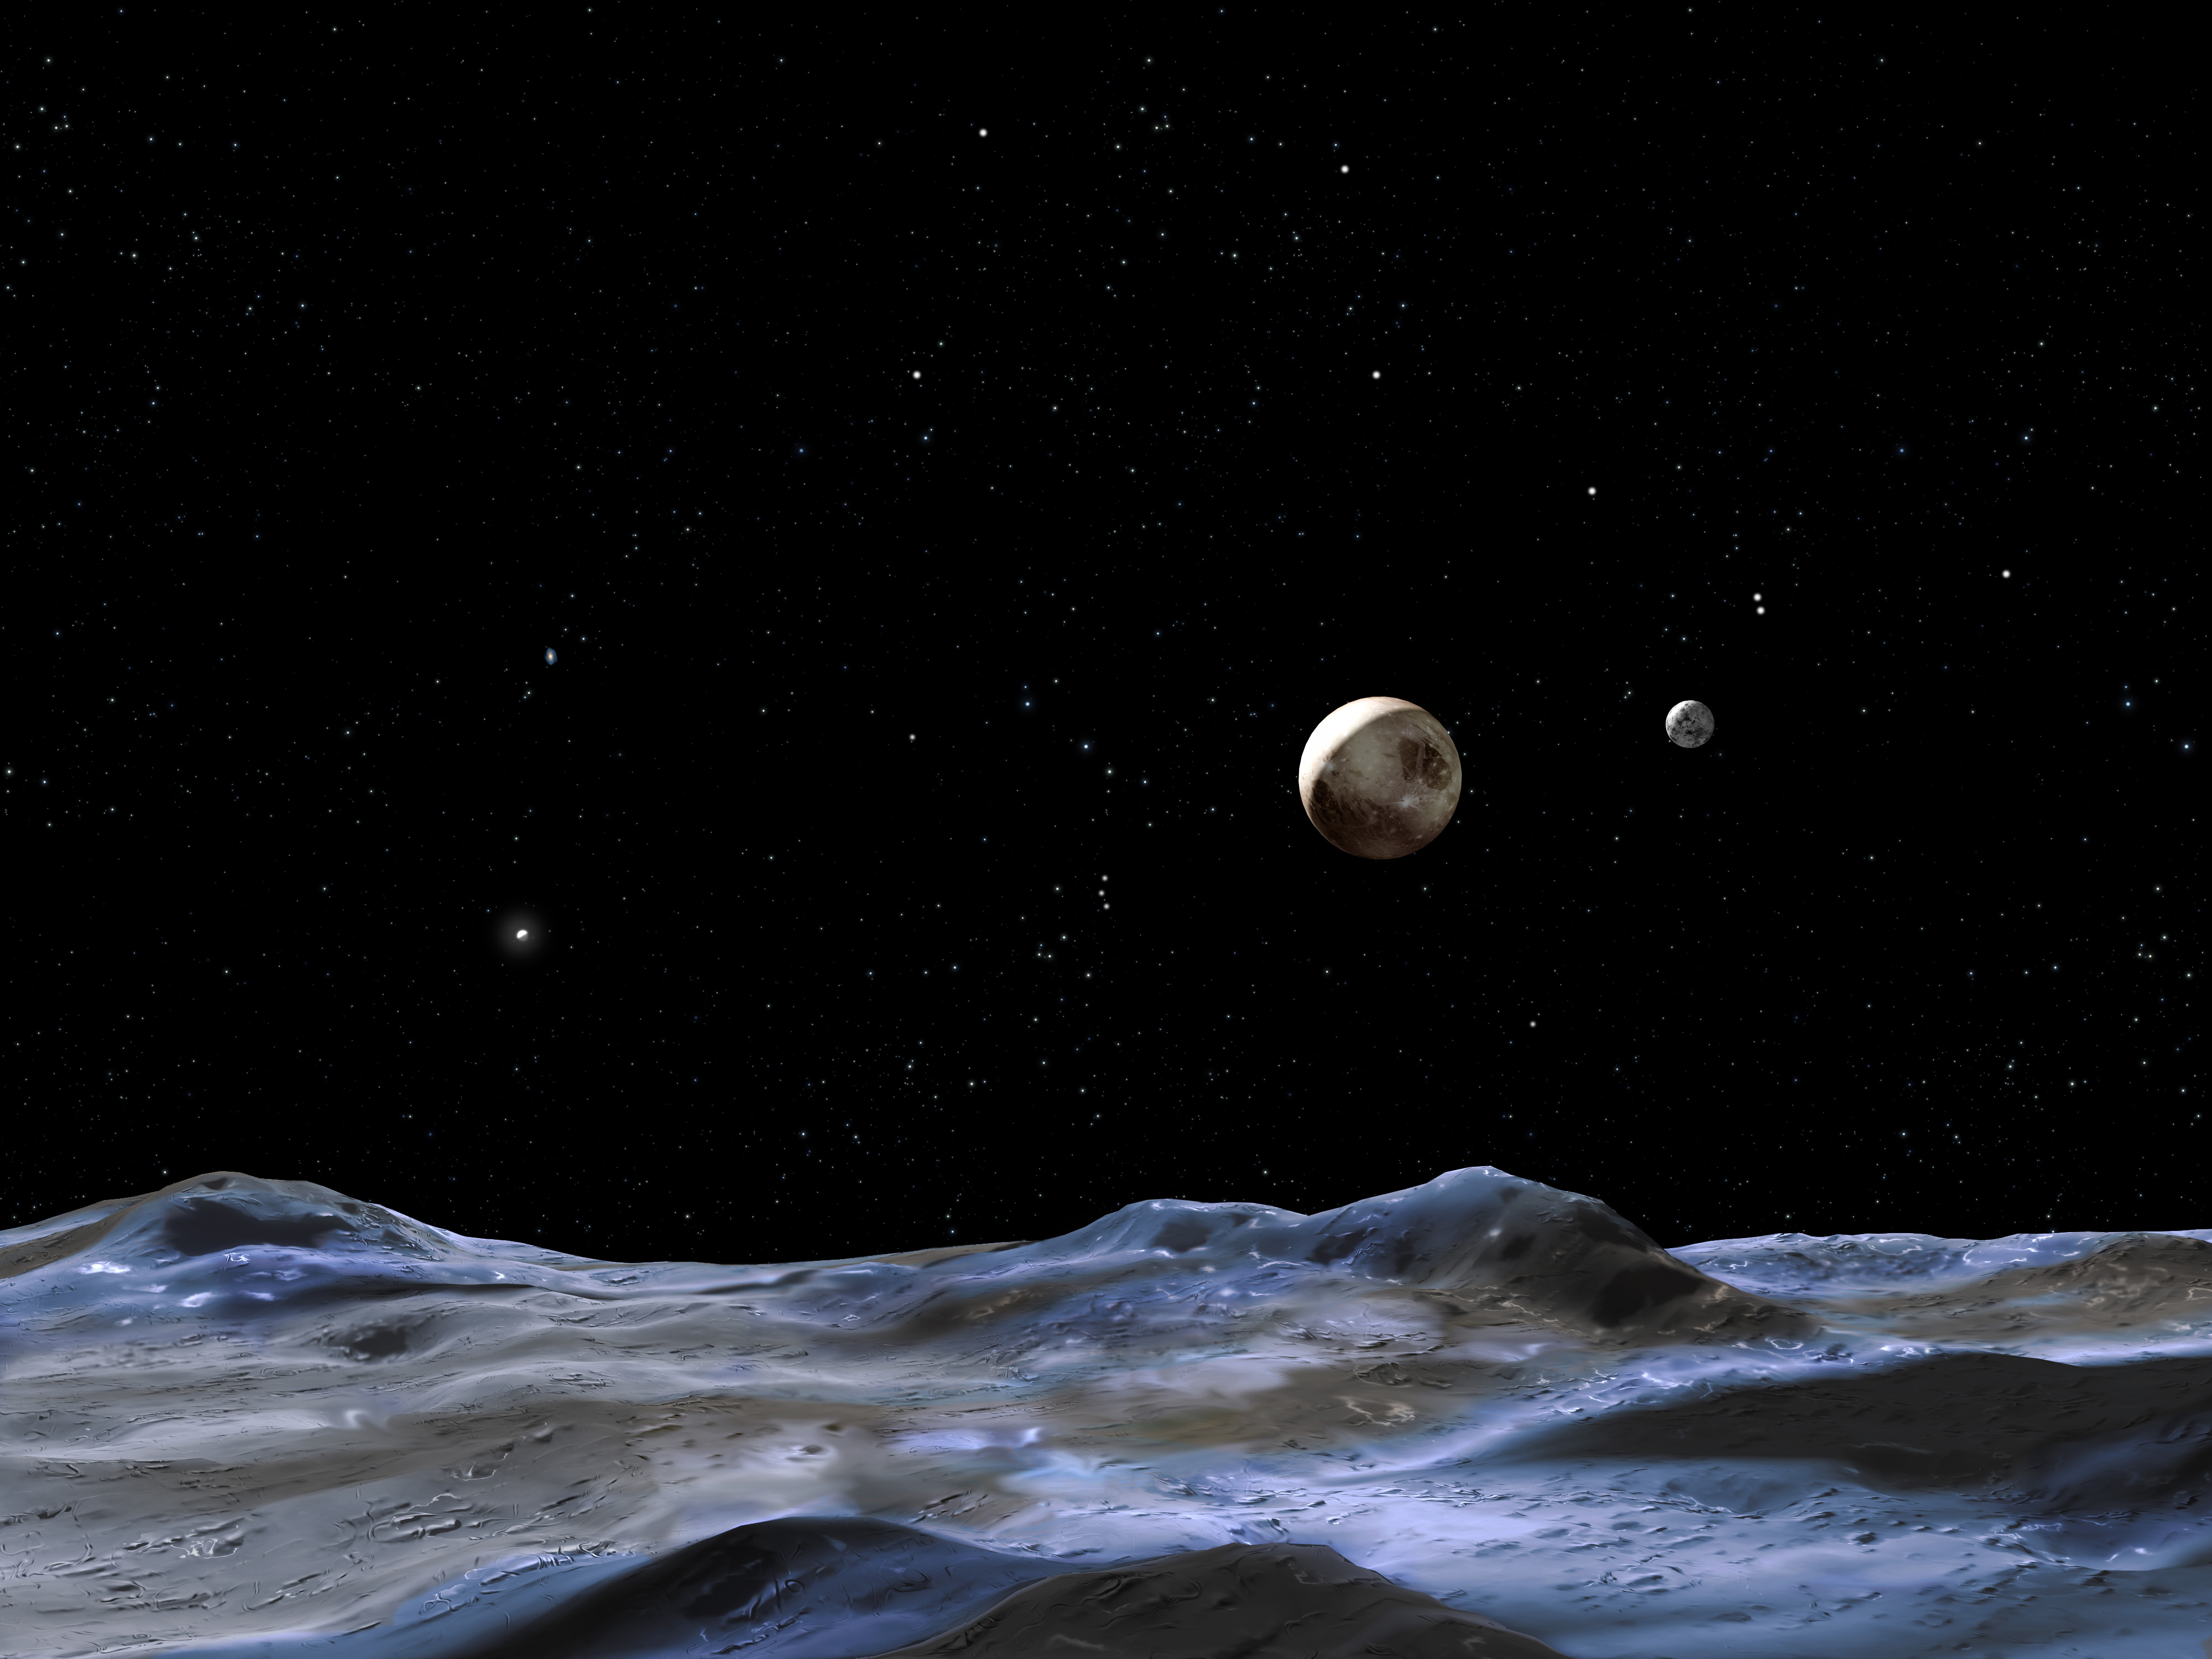 nasa planets with moons - photo #30